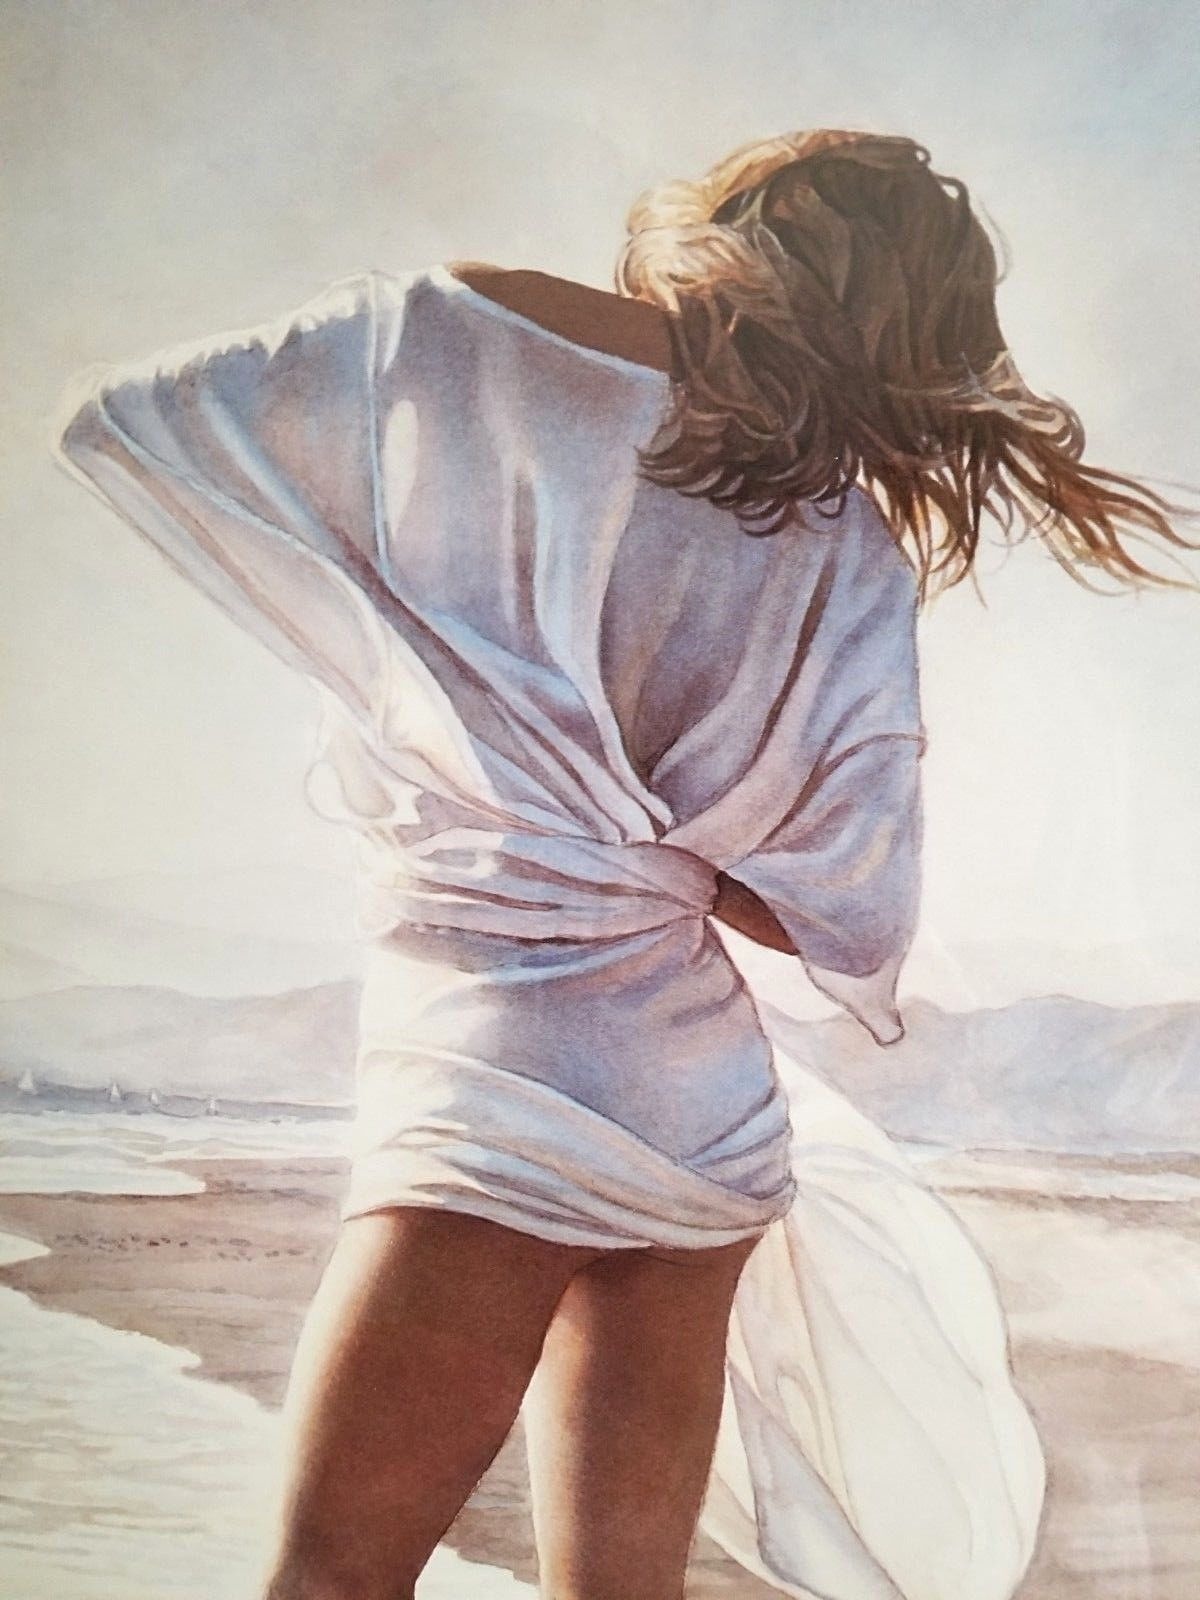 Vintage 1988 Steve Hanks Print Poster OFFSHORE BREEZE Hand Signed RISQUE Beach